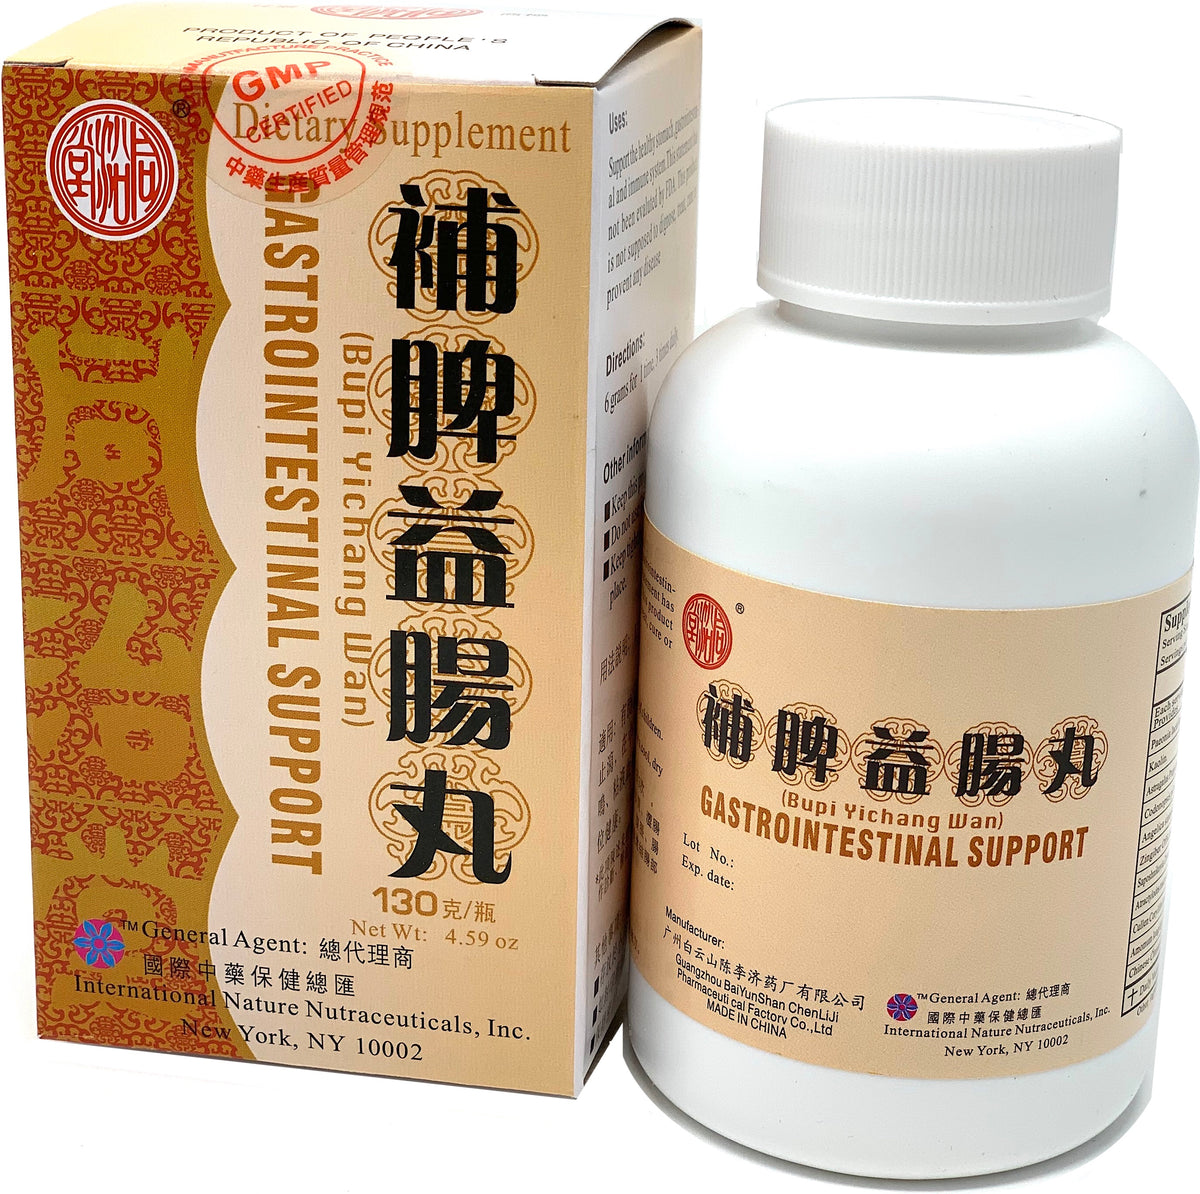 Gastrointestinal Support (Bupi Yichang Wan) 補脾益腸丸